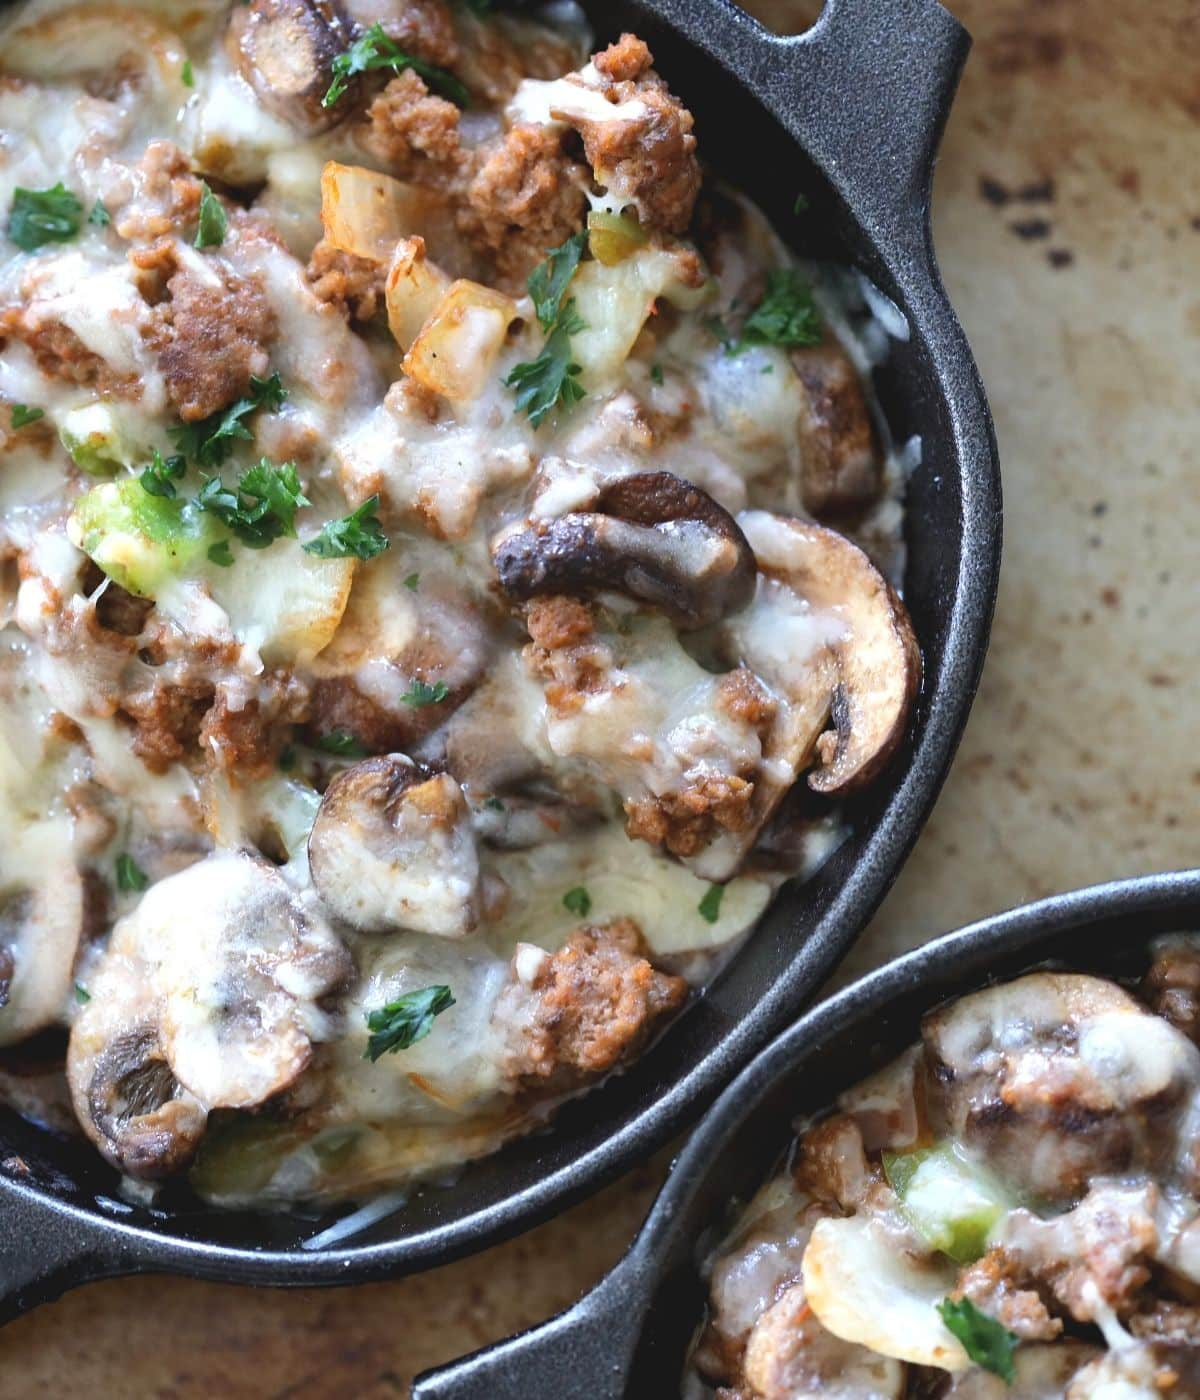 manwich sloppy joe casserole with onions green peppers and mushrooms